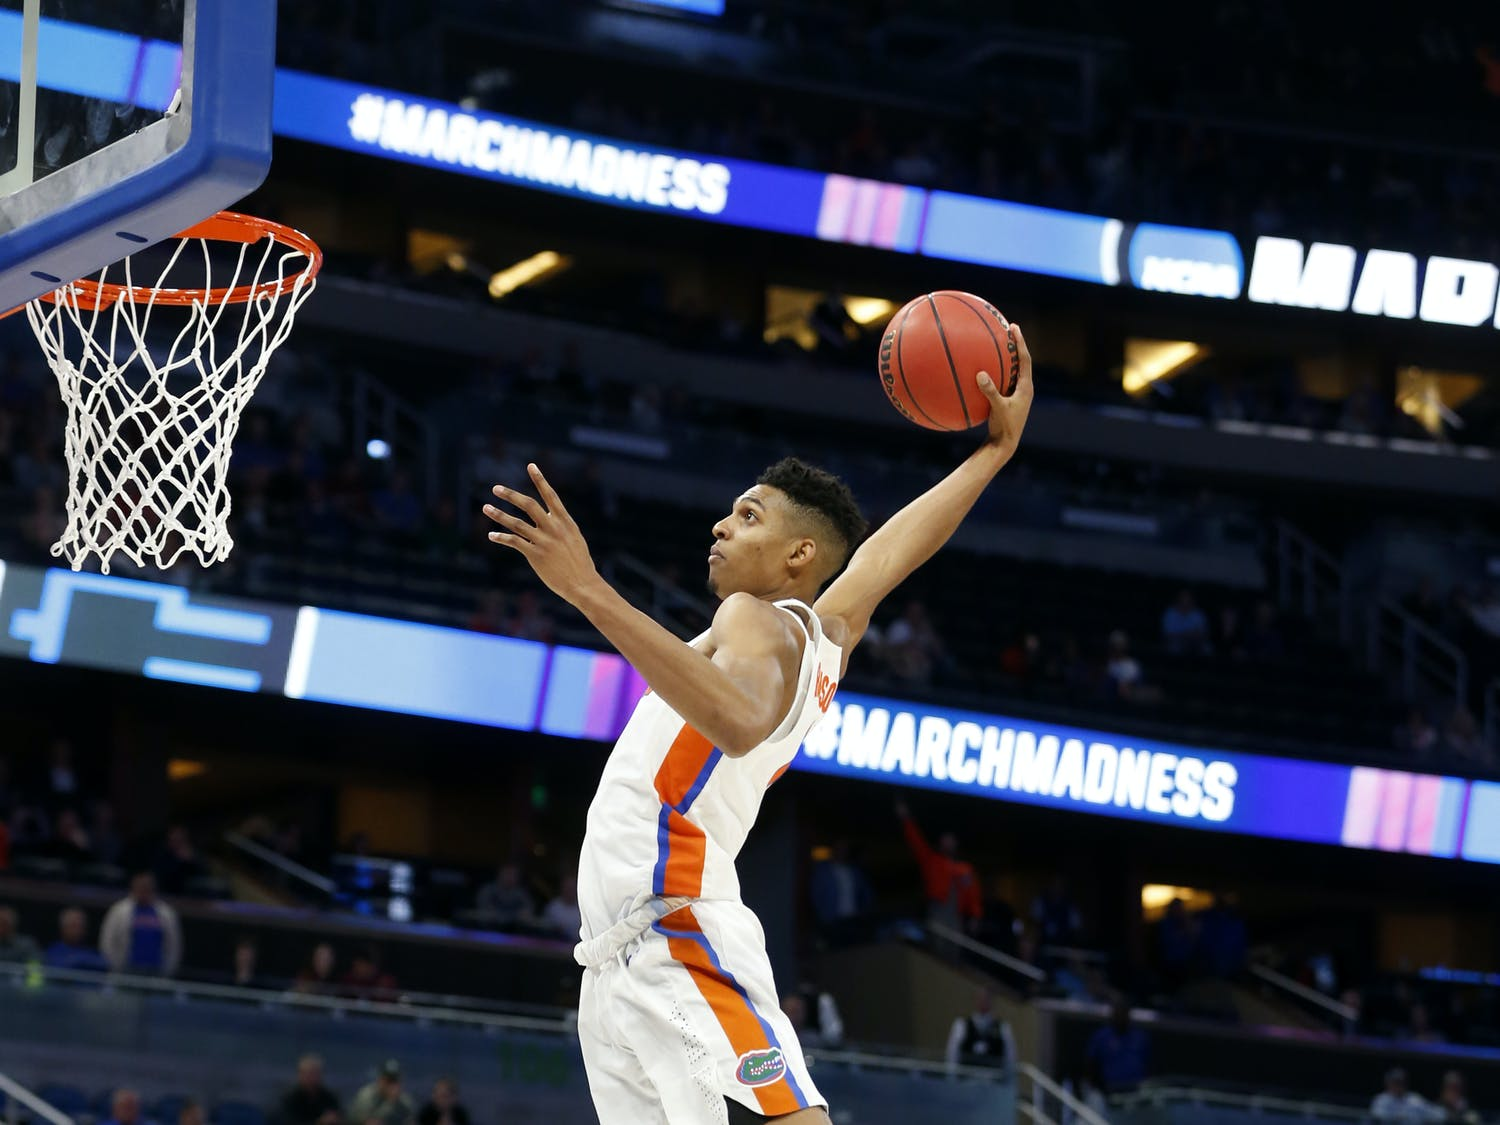 Florida forward Devin Robinson dunks the ball during the second half of the first round of the NCAA college basketball tournament against East Tennessee State, Thursday, March 16, 2017 in Orlando, Fla. Florida defeated ETSU 80-65. (AP Photo/Wilfredo Lee)